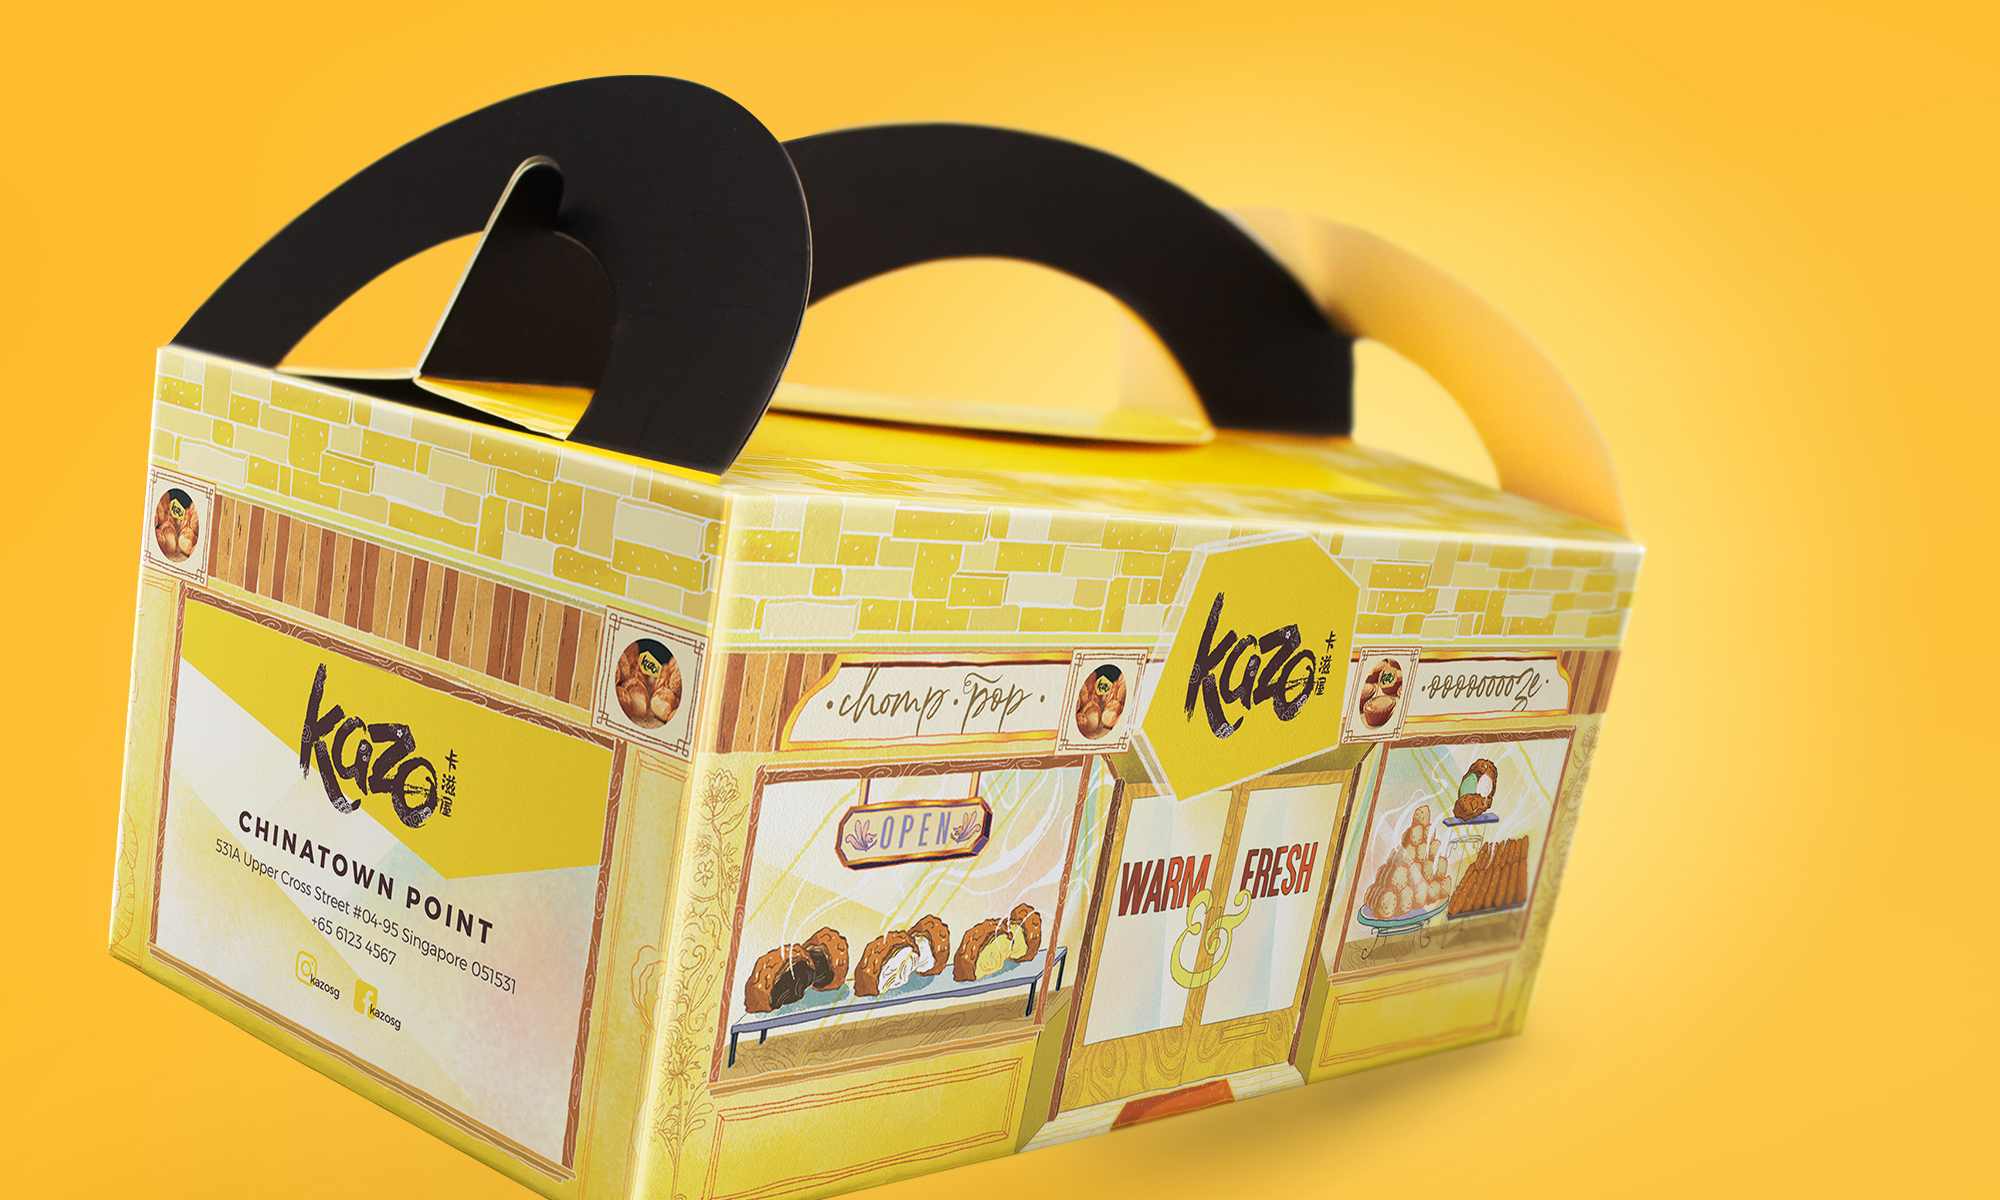 kazo-singapore-puffs-packaging